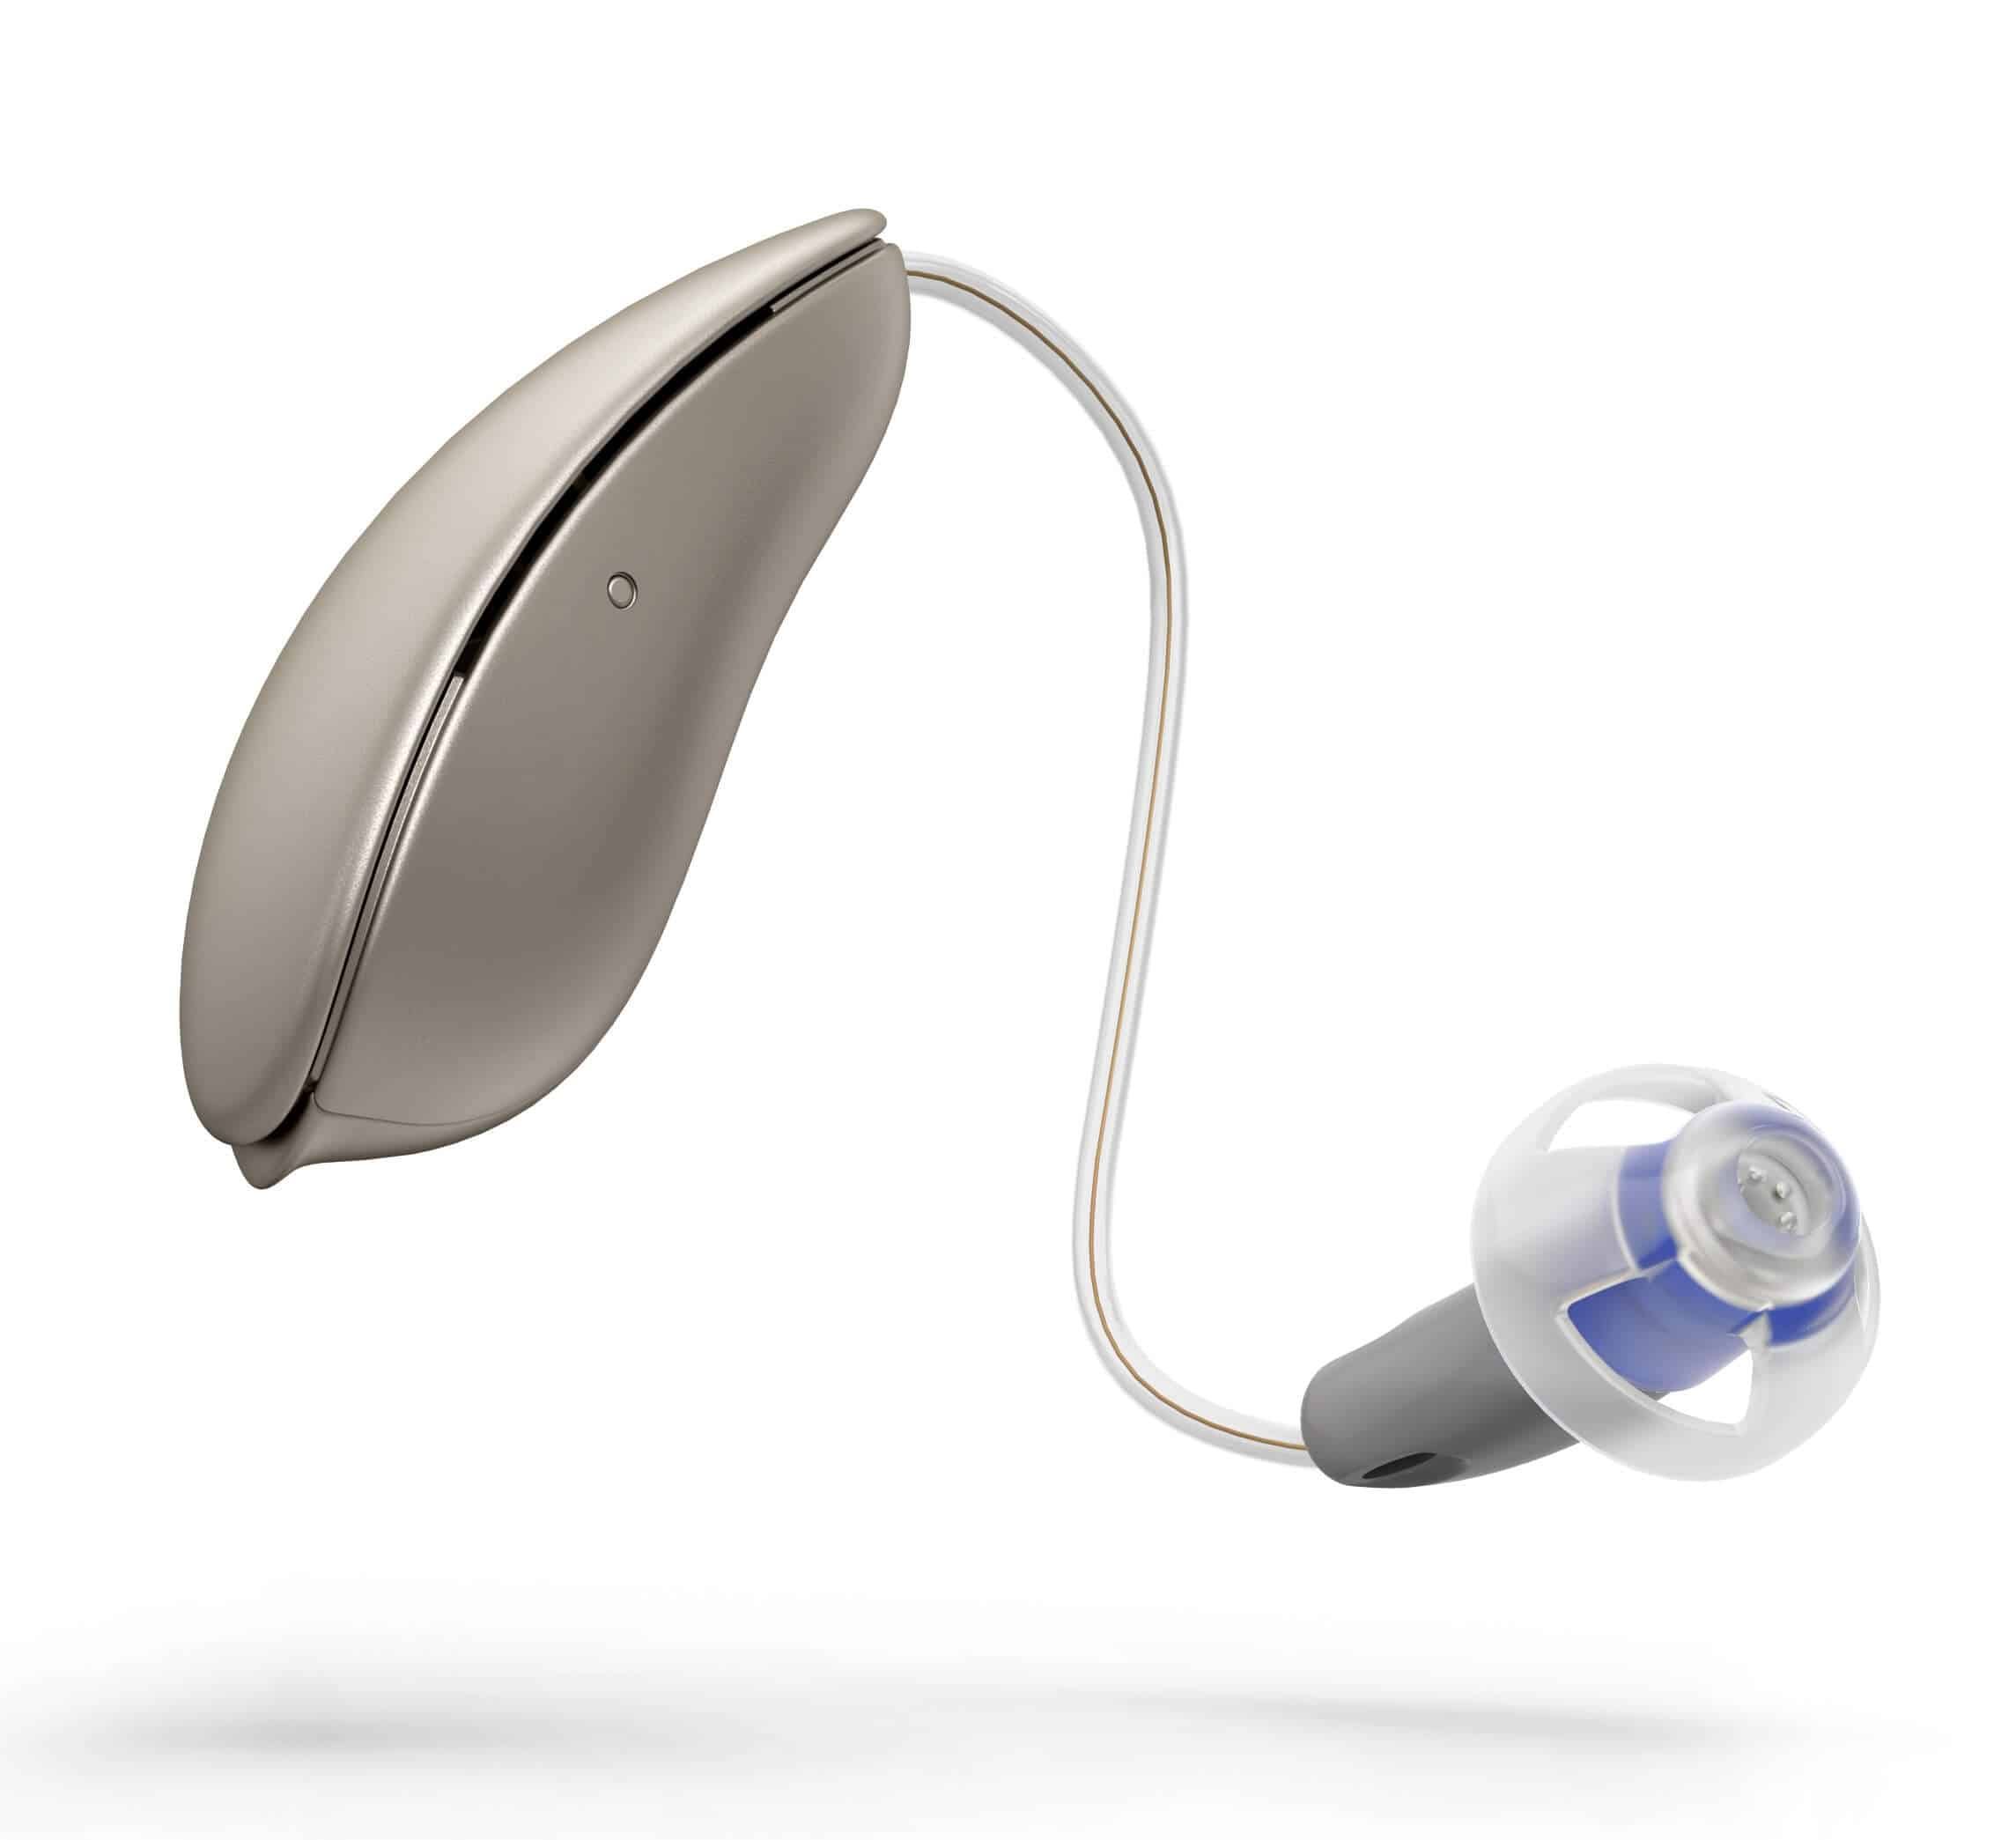 oticon hearing aid The oticon is part of the hearing aid test program at consumer reports in our lab tests, hearing aid brand models like the oticon are rated on multiple criteria, such as those listed below.